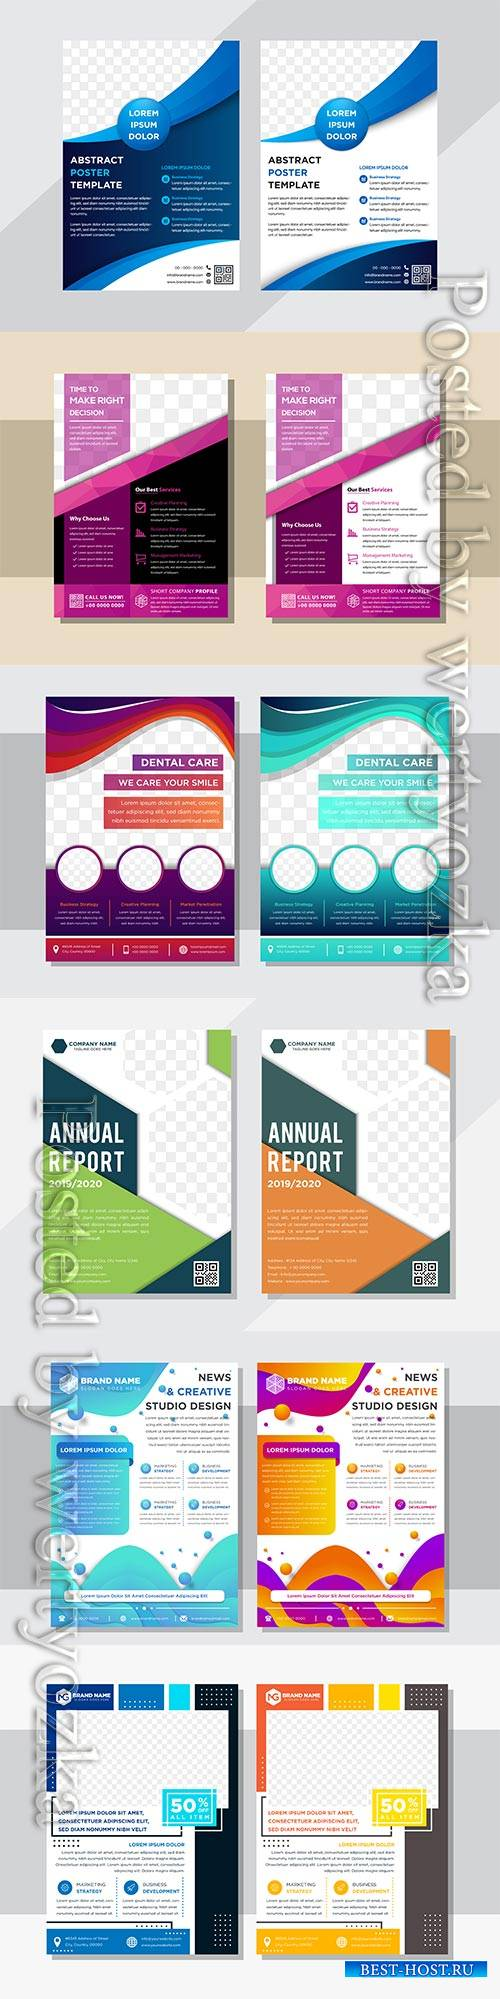 Business flyer template design, brochure vector illustration # 3